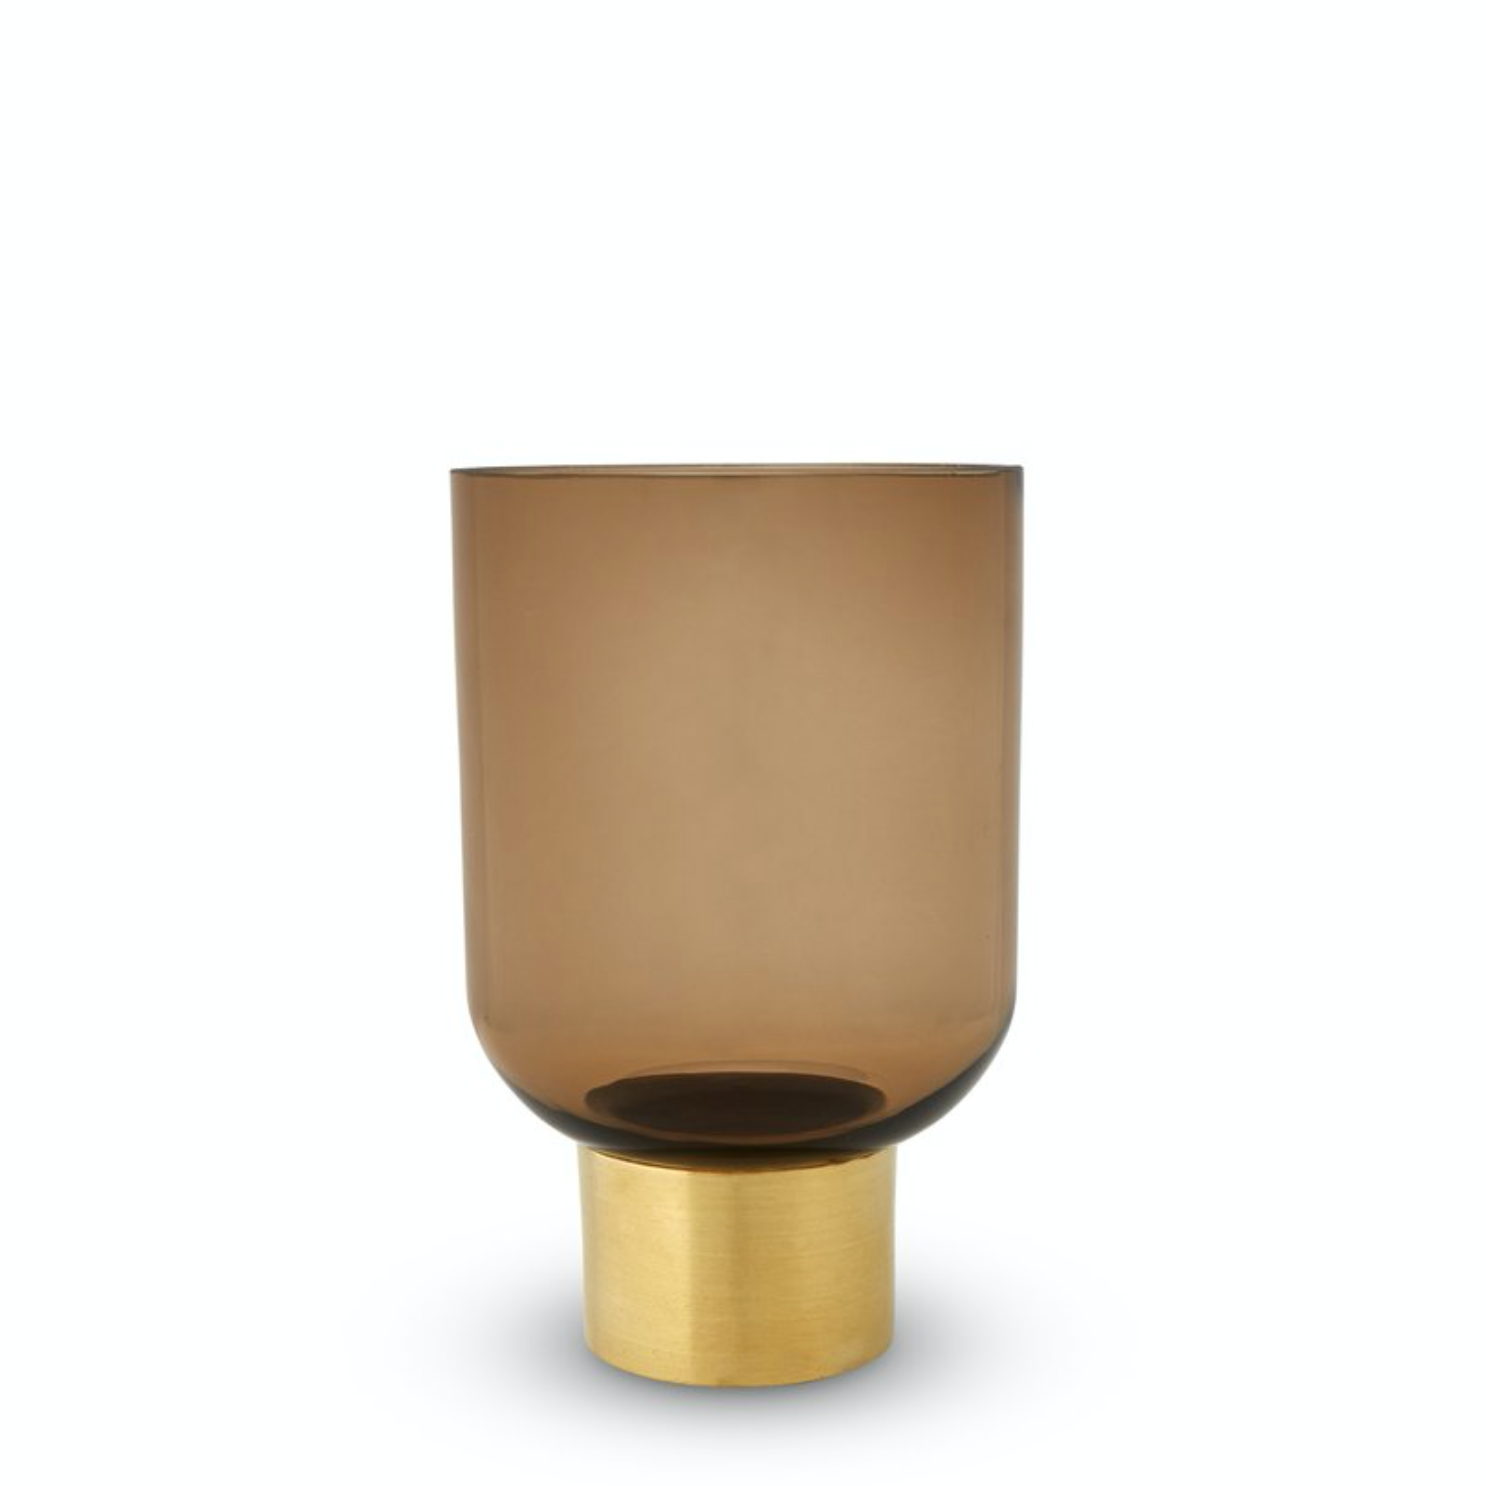 Luxor Vase - Butterscotch - Small (Aval. for Local Drop Off Only)